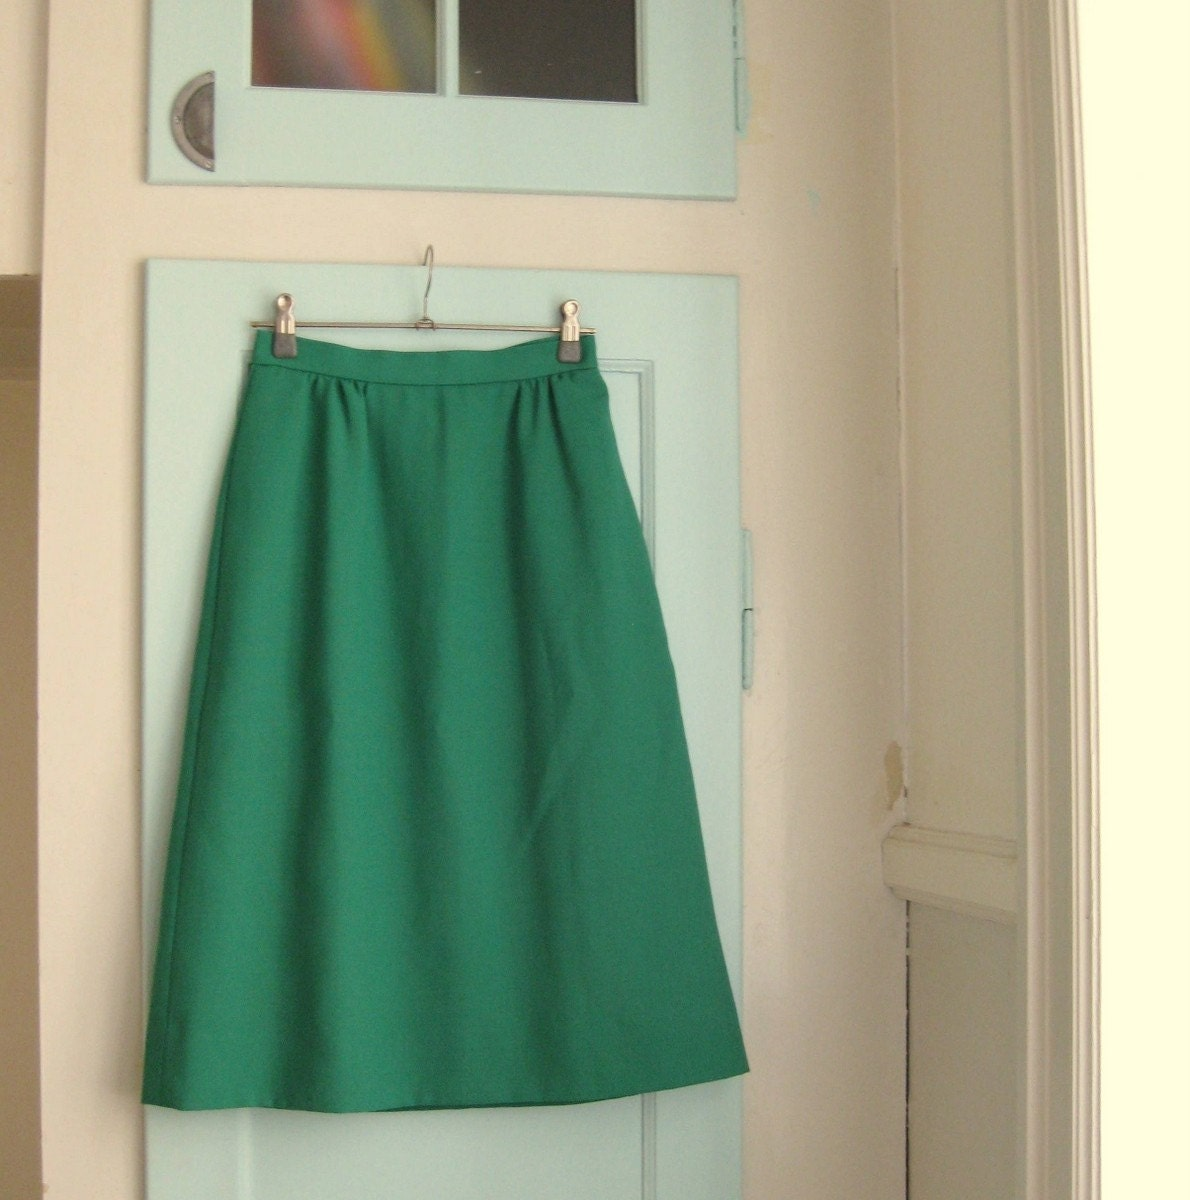 The Retro Natural: Vintage Style: Skirts